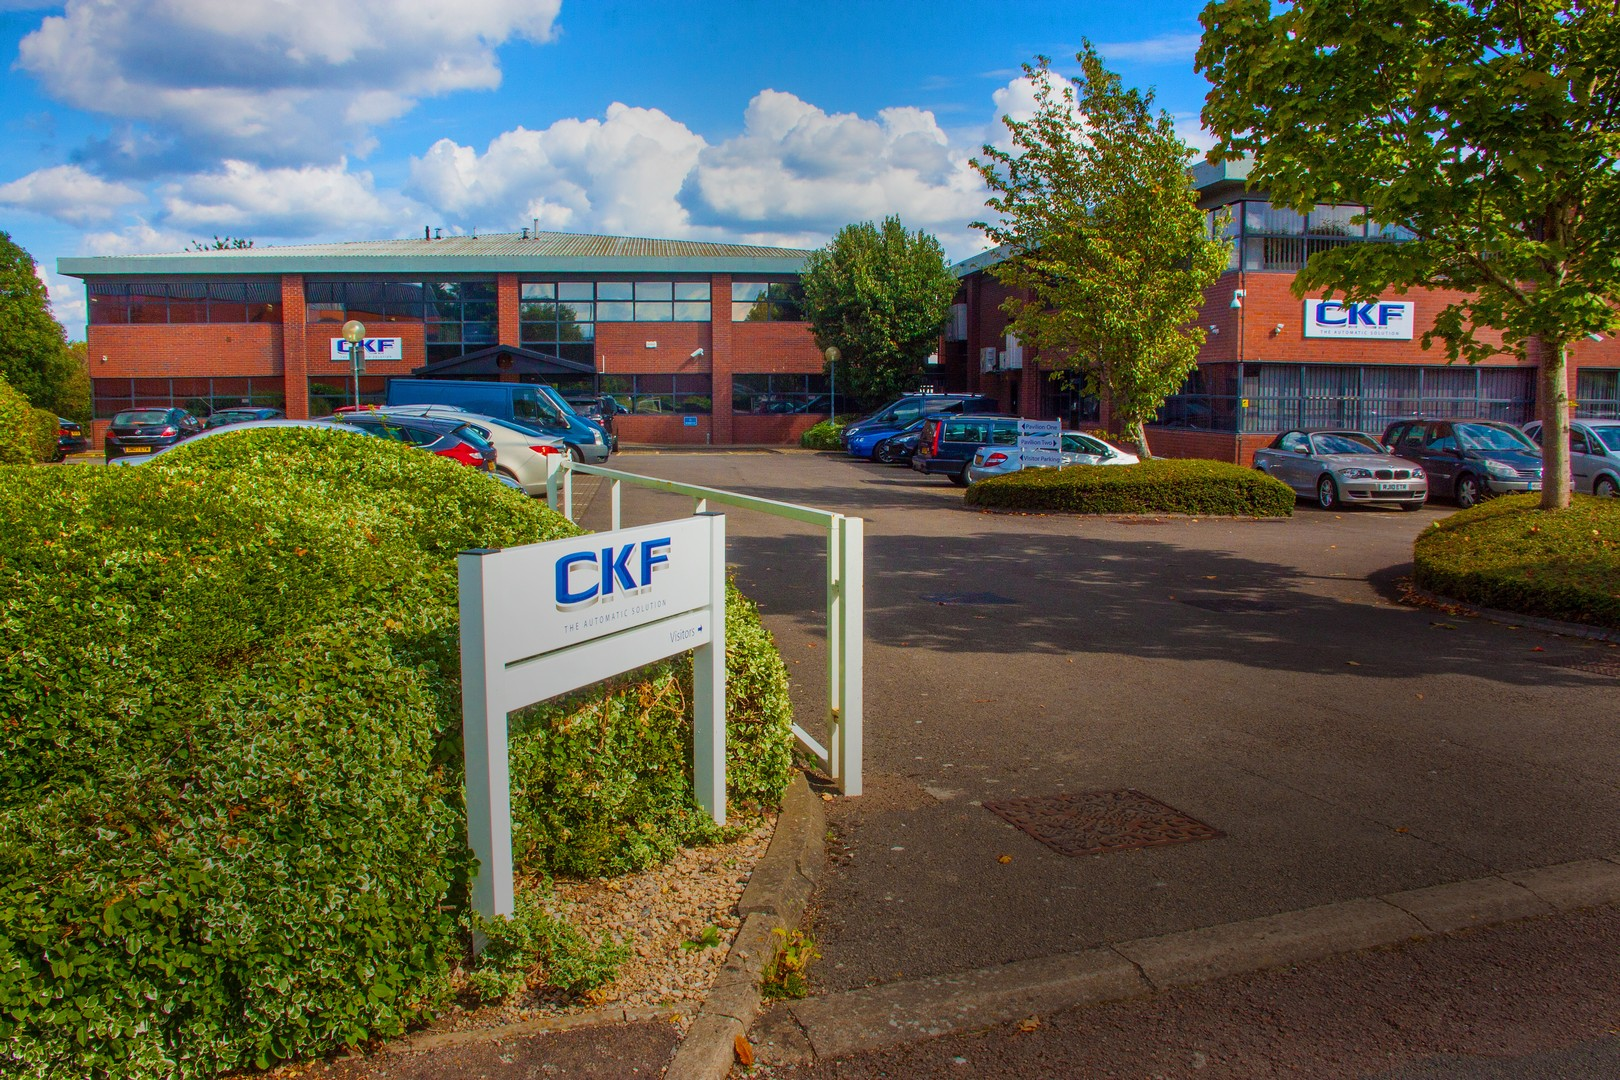 Exciting new future for CKF Systems